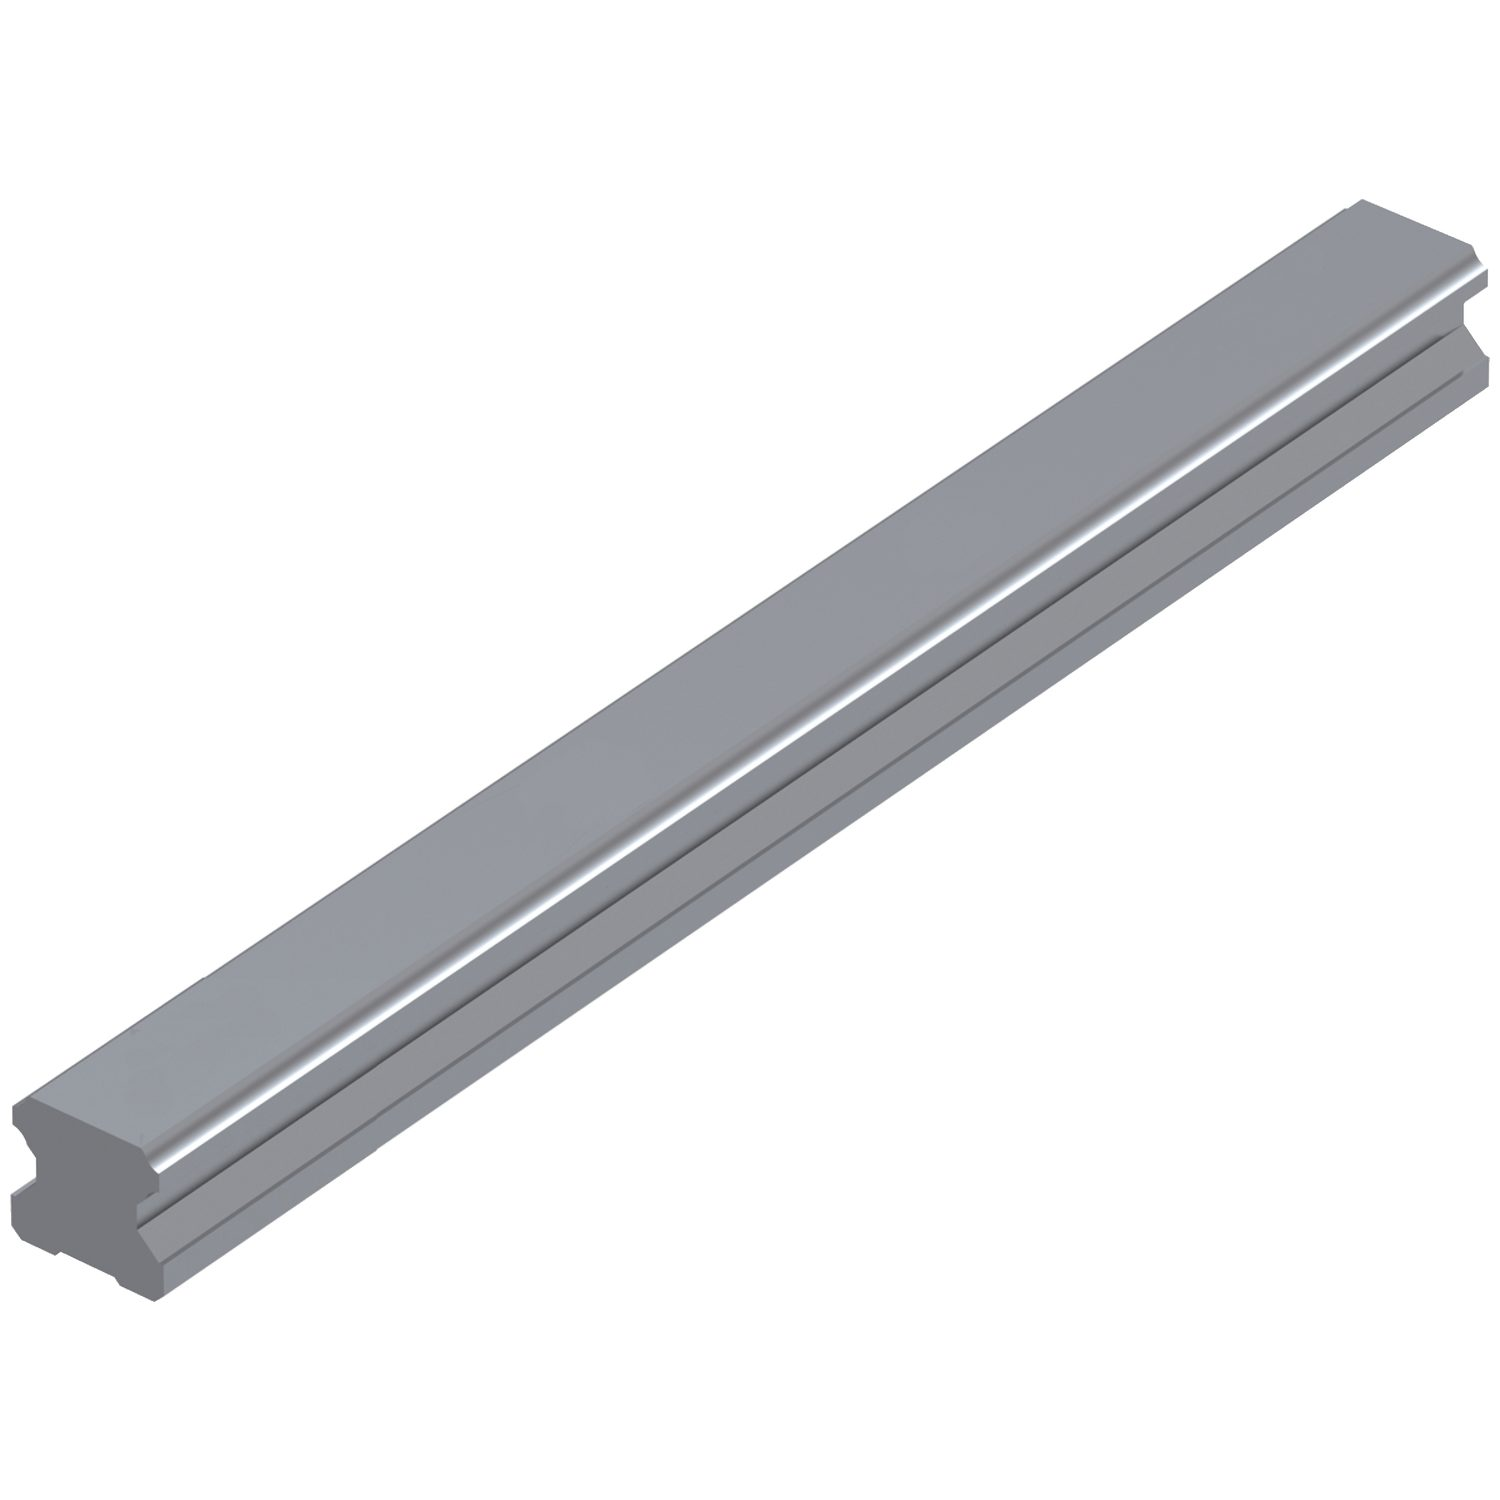 L1016.RF - 20mm Linear Guide Rail